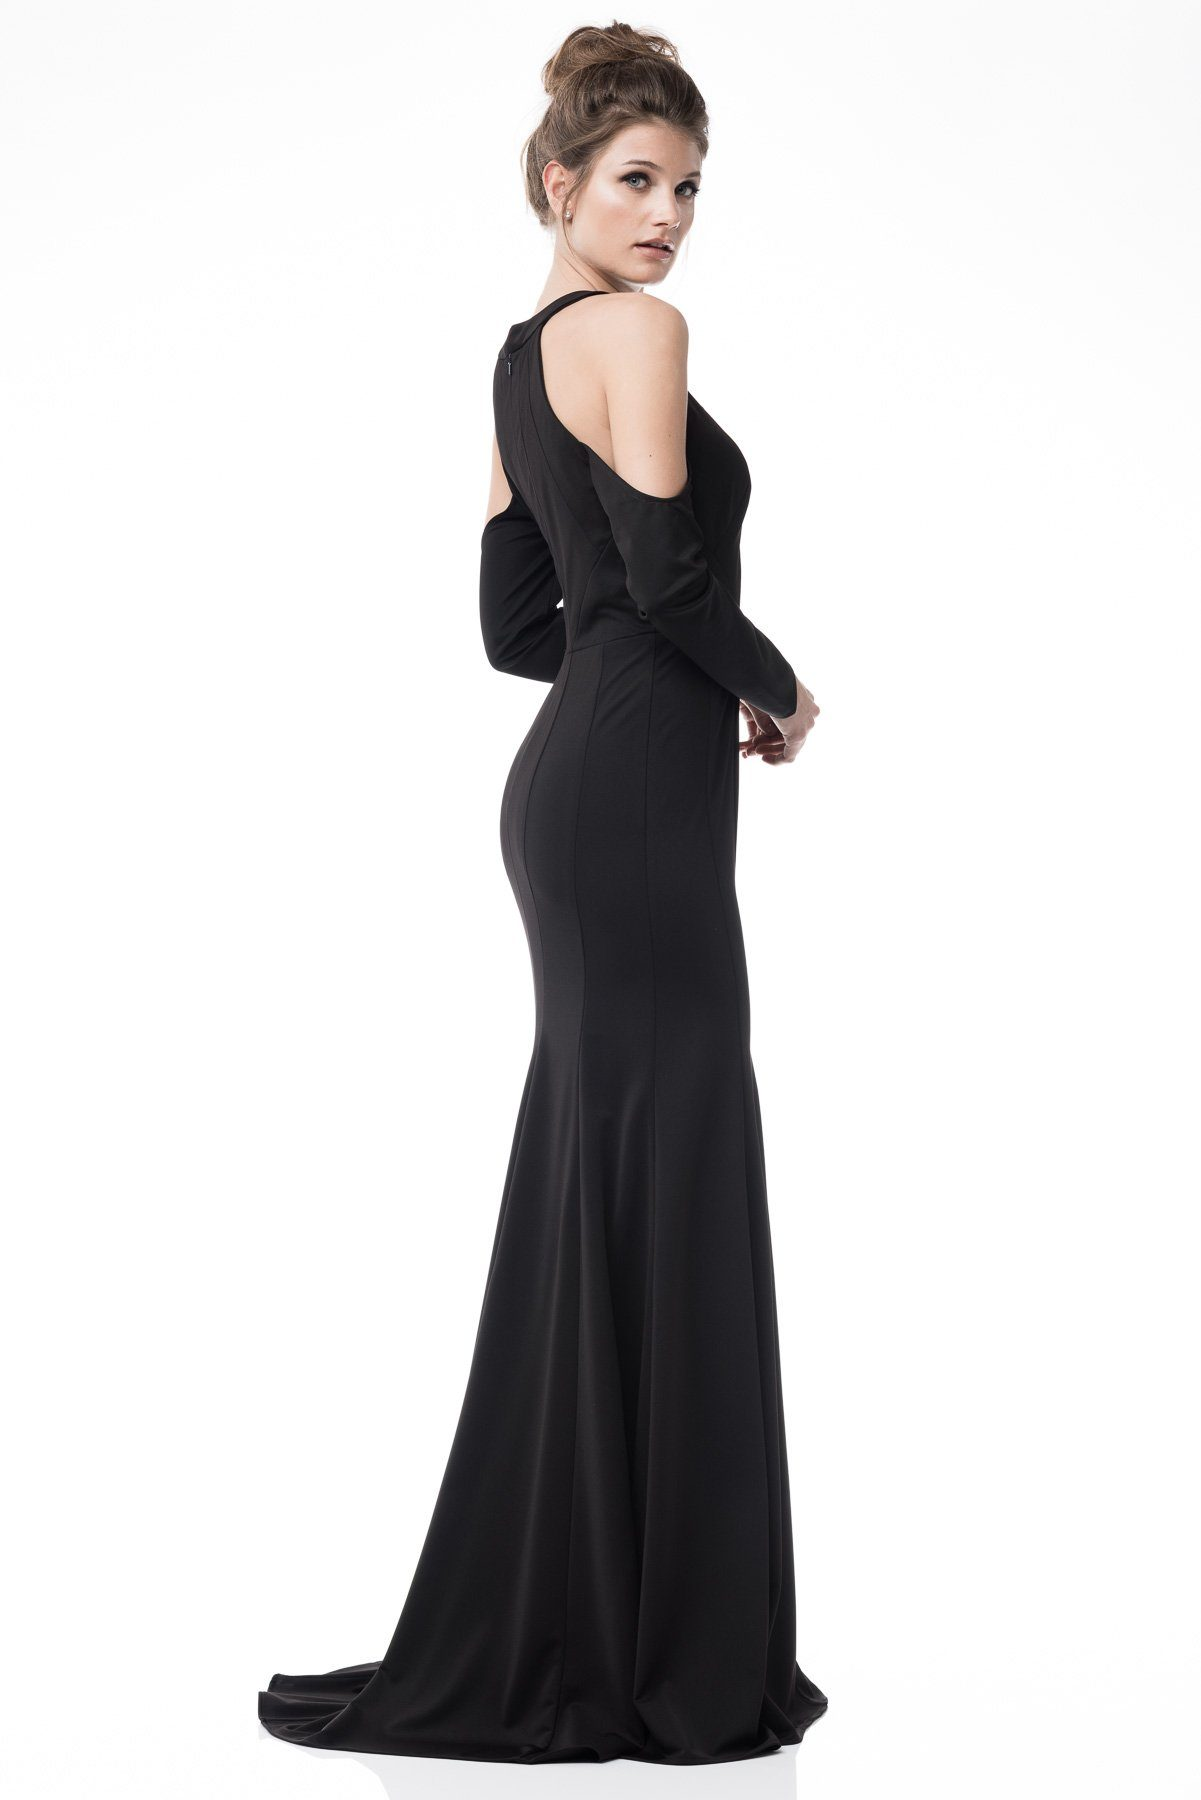 586f1f93db Black formal dress with sleeves BC CP61363-Simply Fab Dress ...